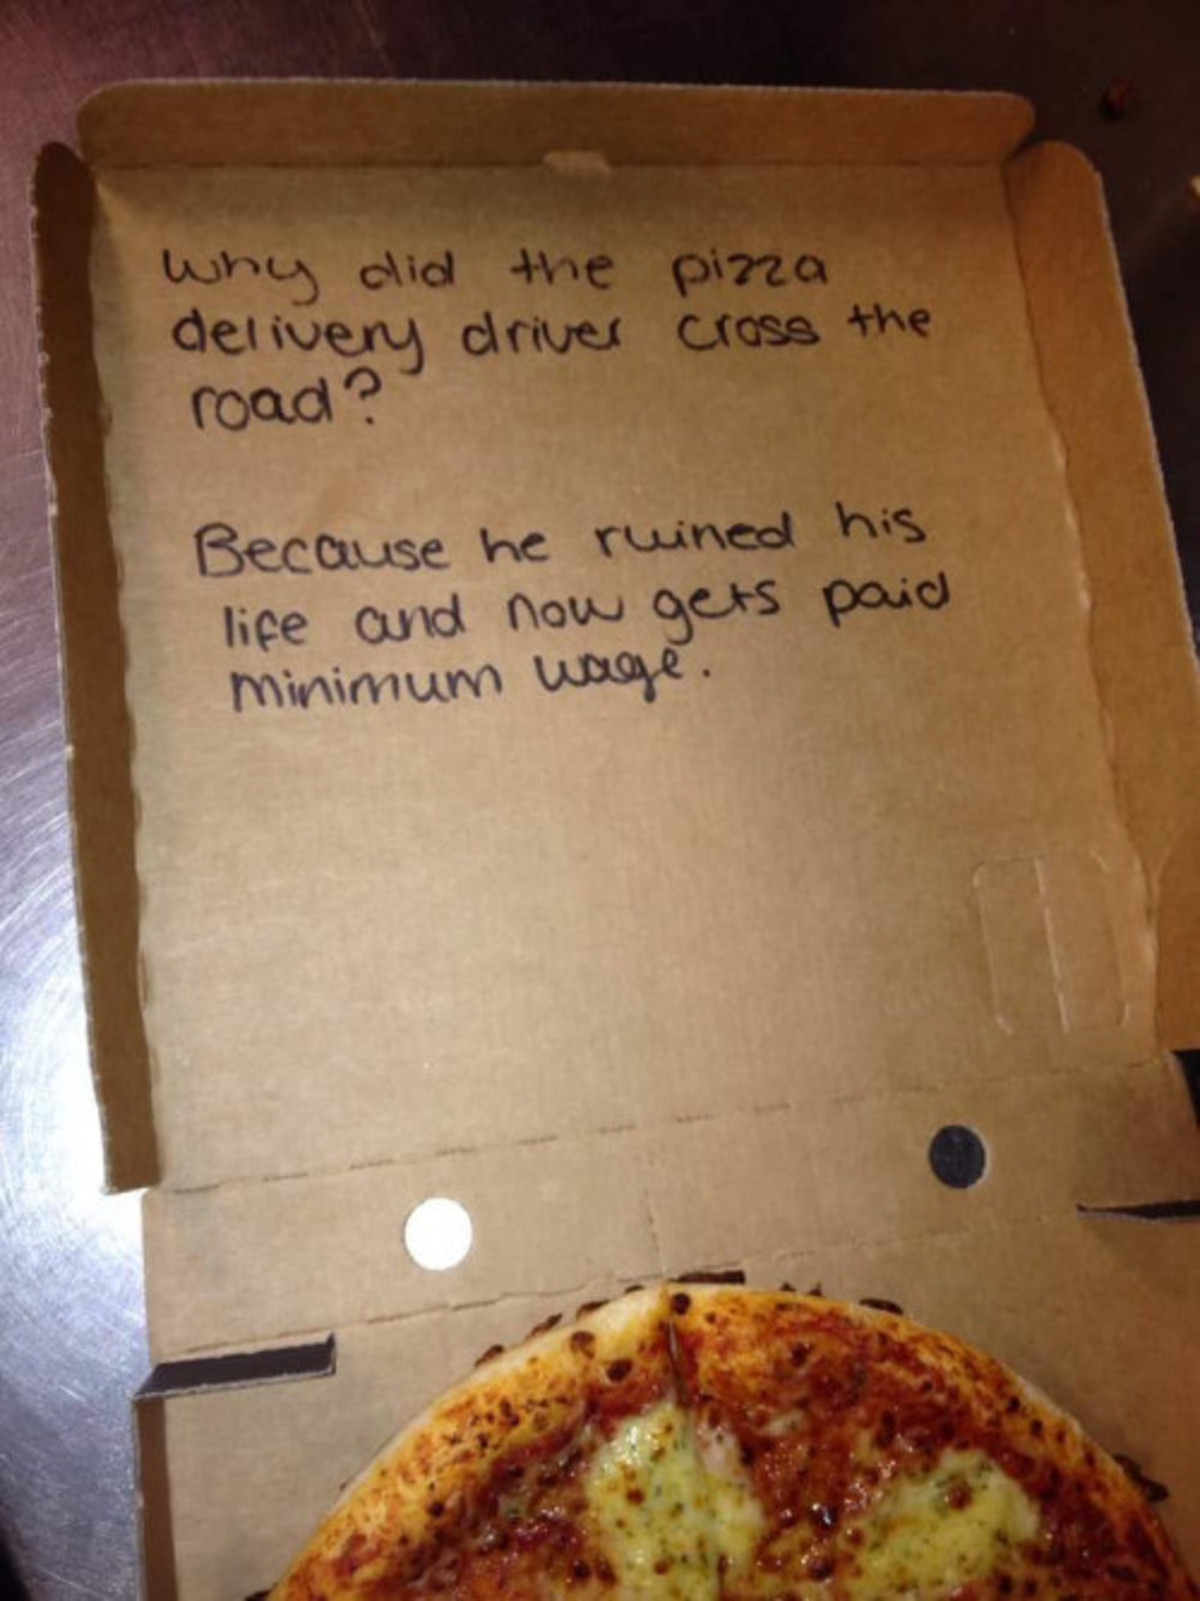 auious functional Cobra. .. handwriting is too feminine to be a guy, the girl who ordered pizza wrote that